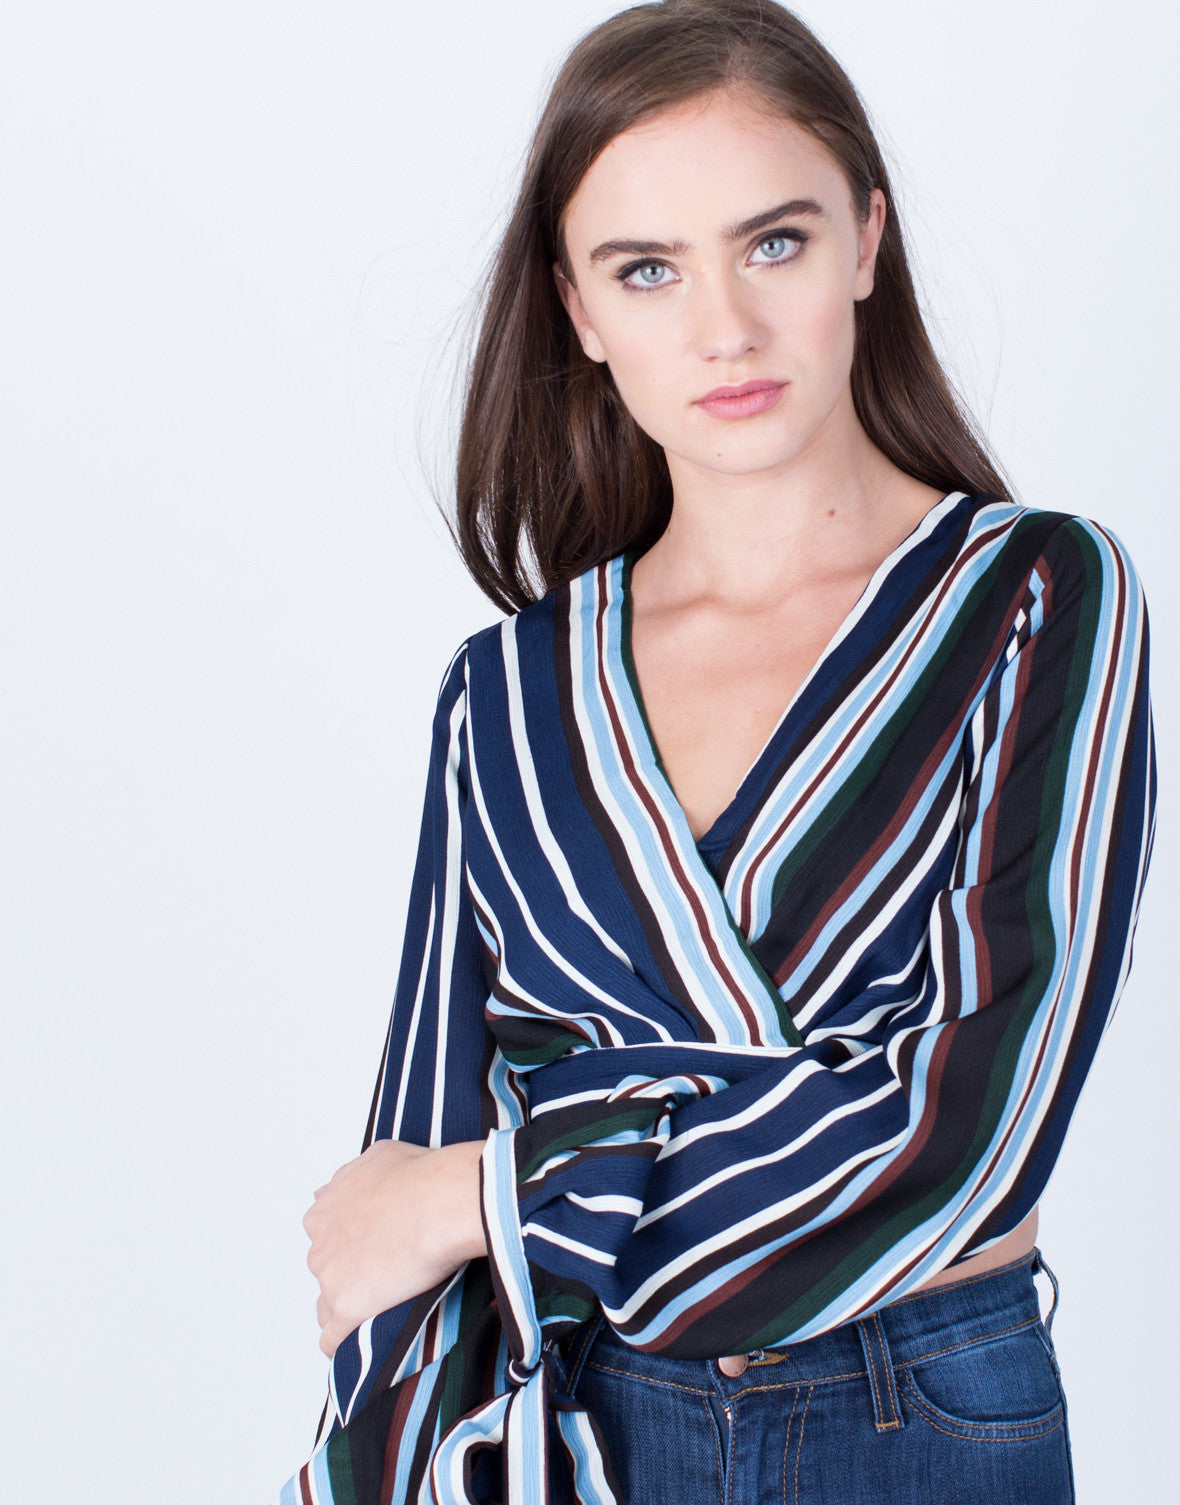 b5466189e7fc9a 70's Striped Crop Top - Navy Stripe Top - Pink Stripe Cropped Blouse ...